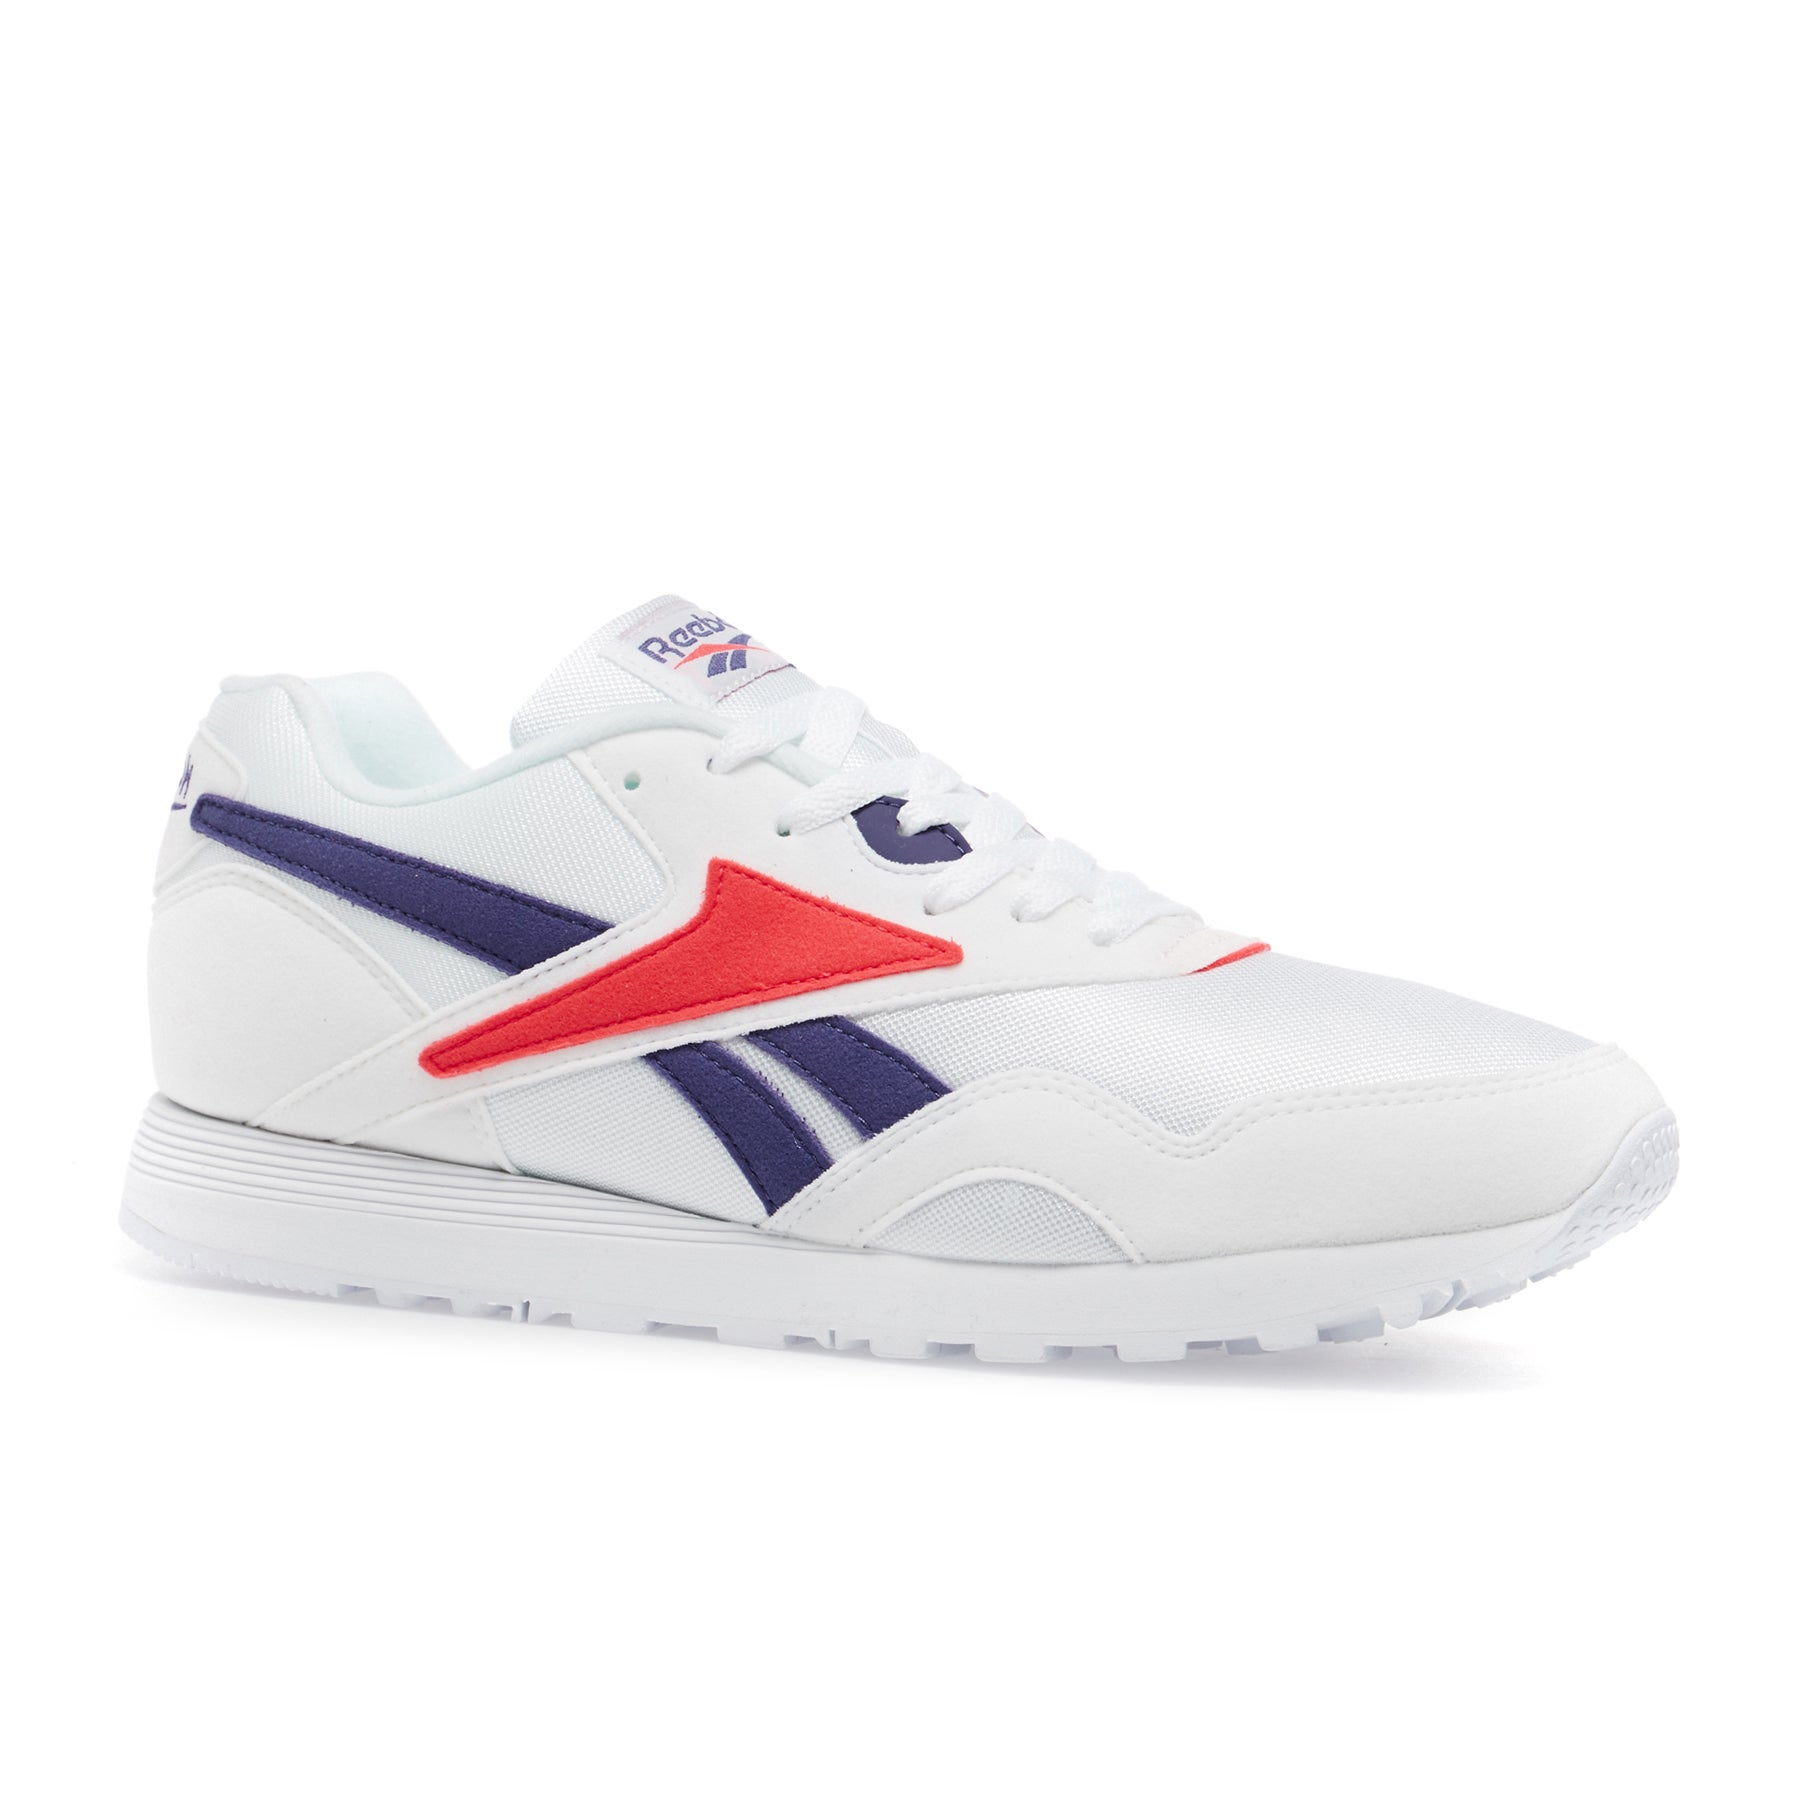 Reebok Rapide Mu Shoes - White Team Purple Neon Red